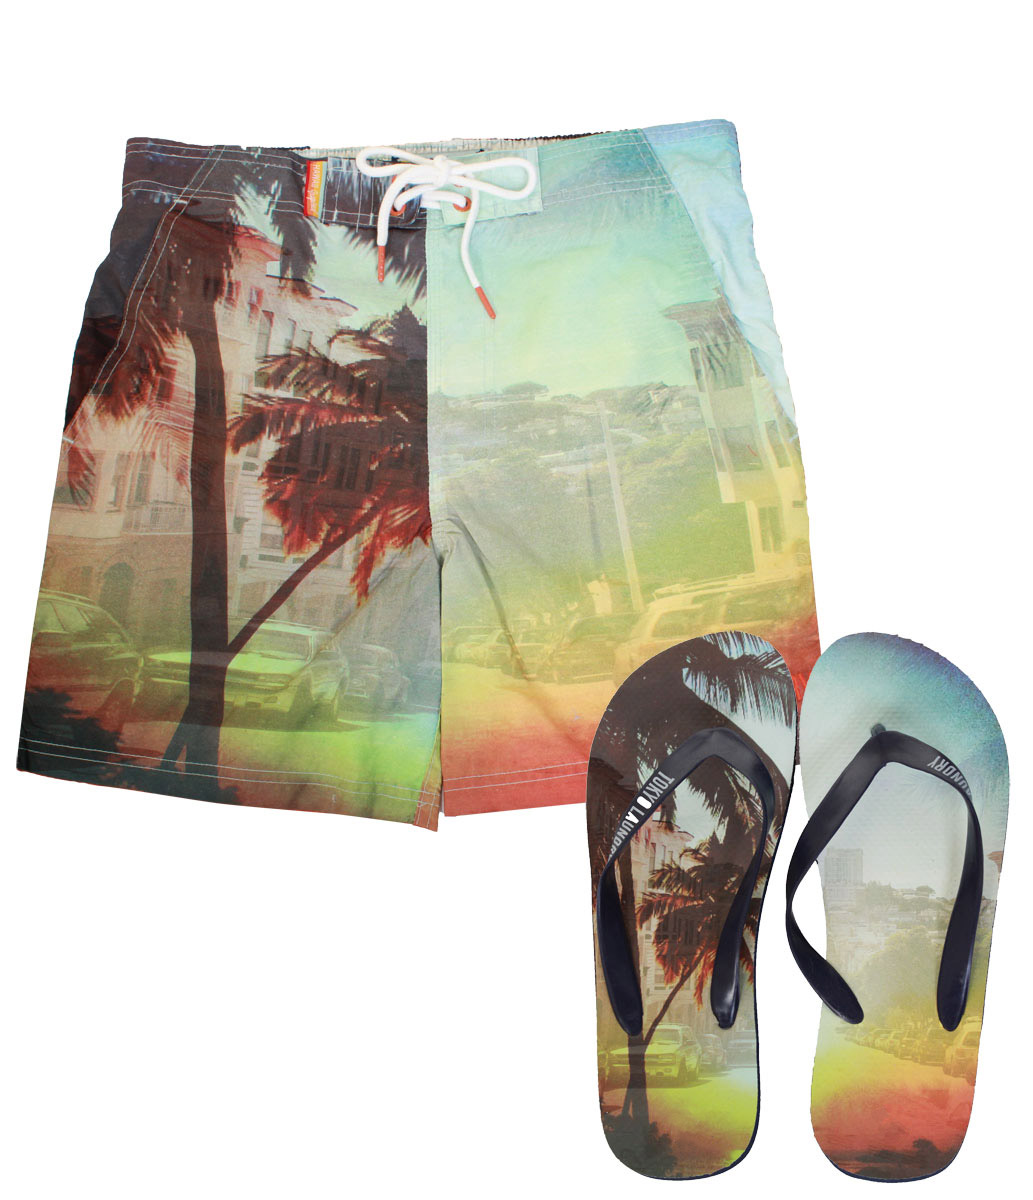 Tokoyo Laundry Doumia Swimming Trunks With Flip Flops